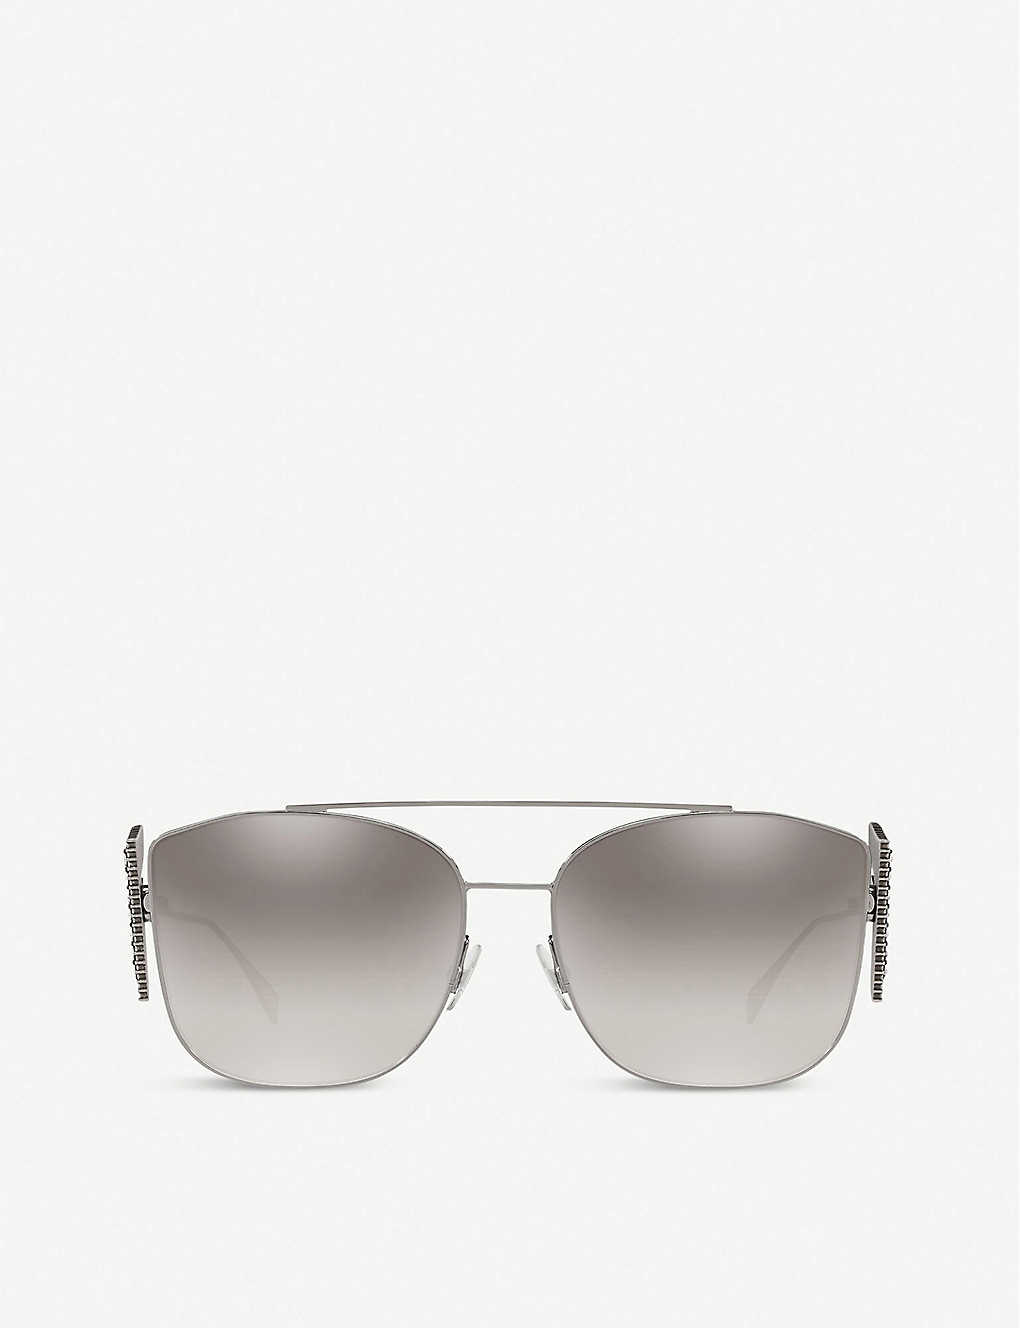 FENDI: FF0380 metal and acetate sunglasses